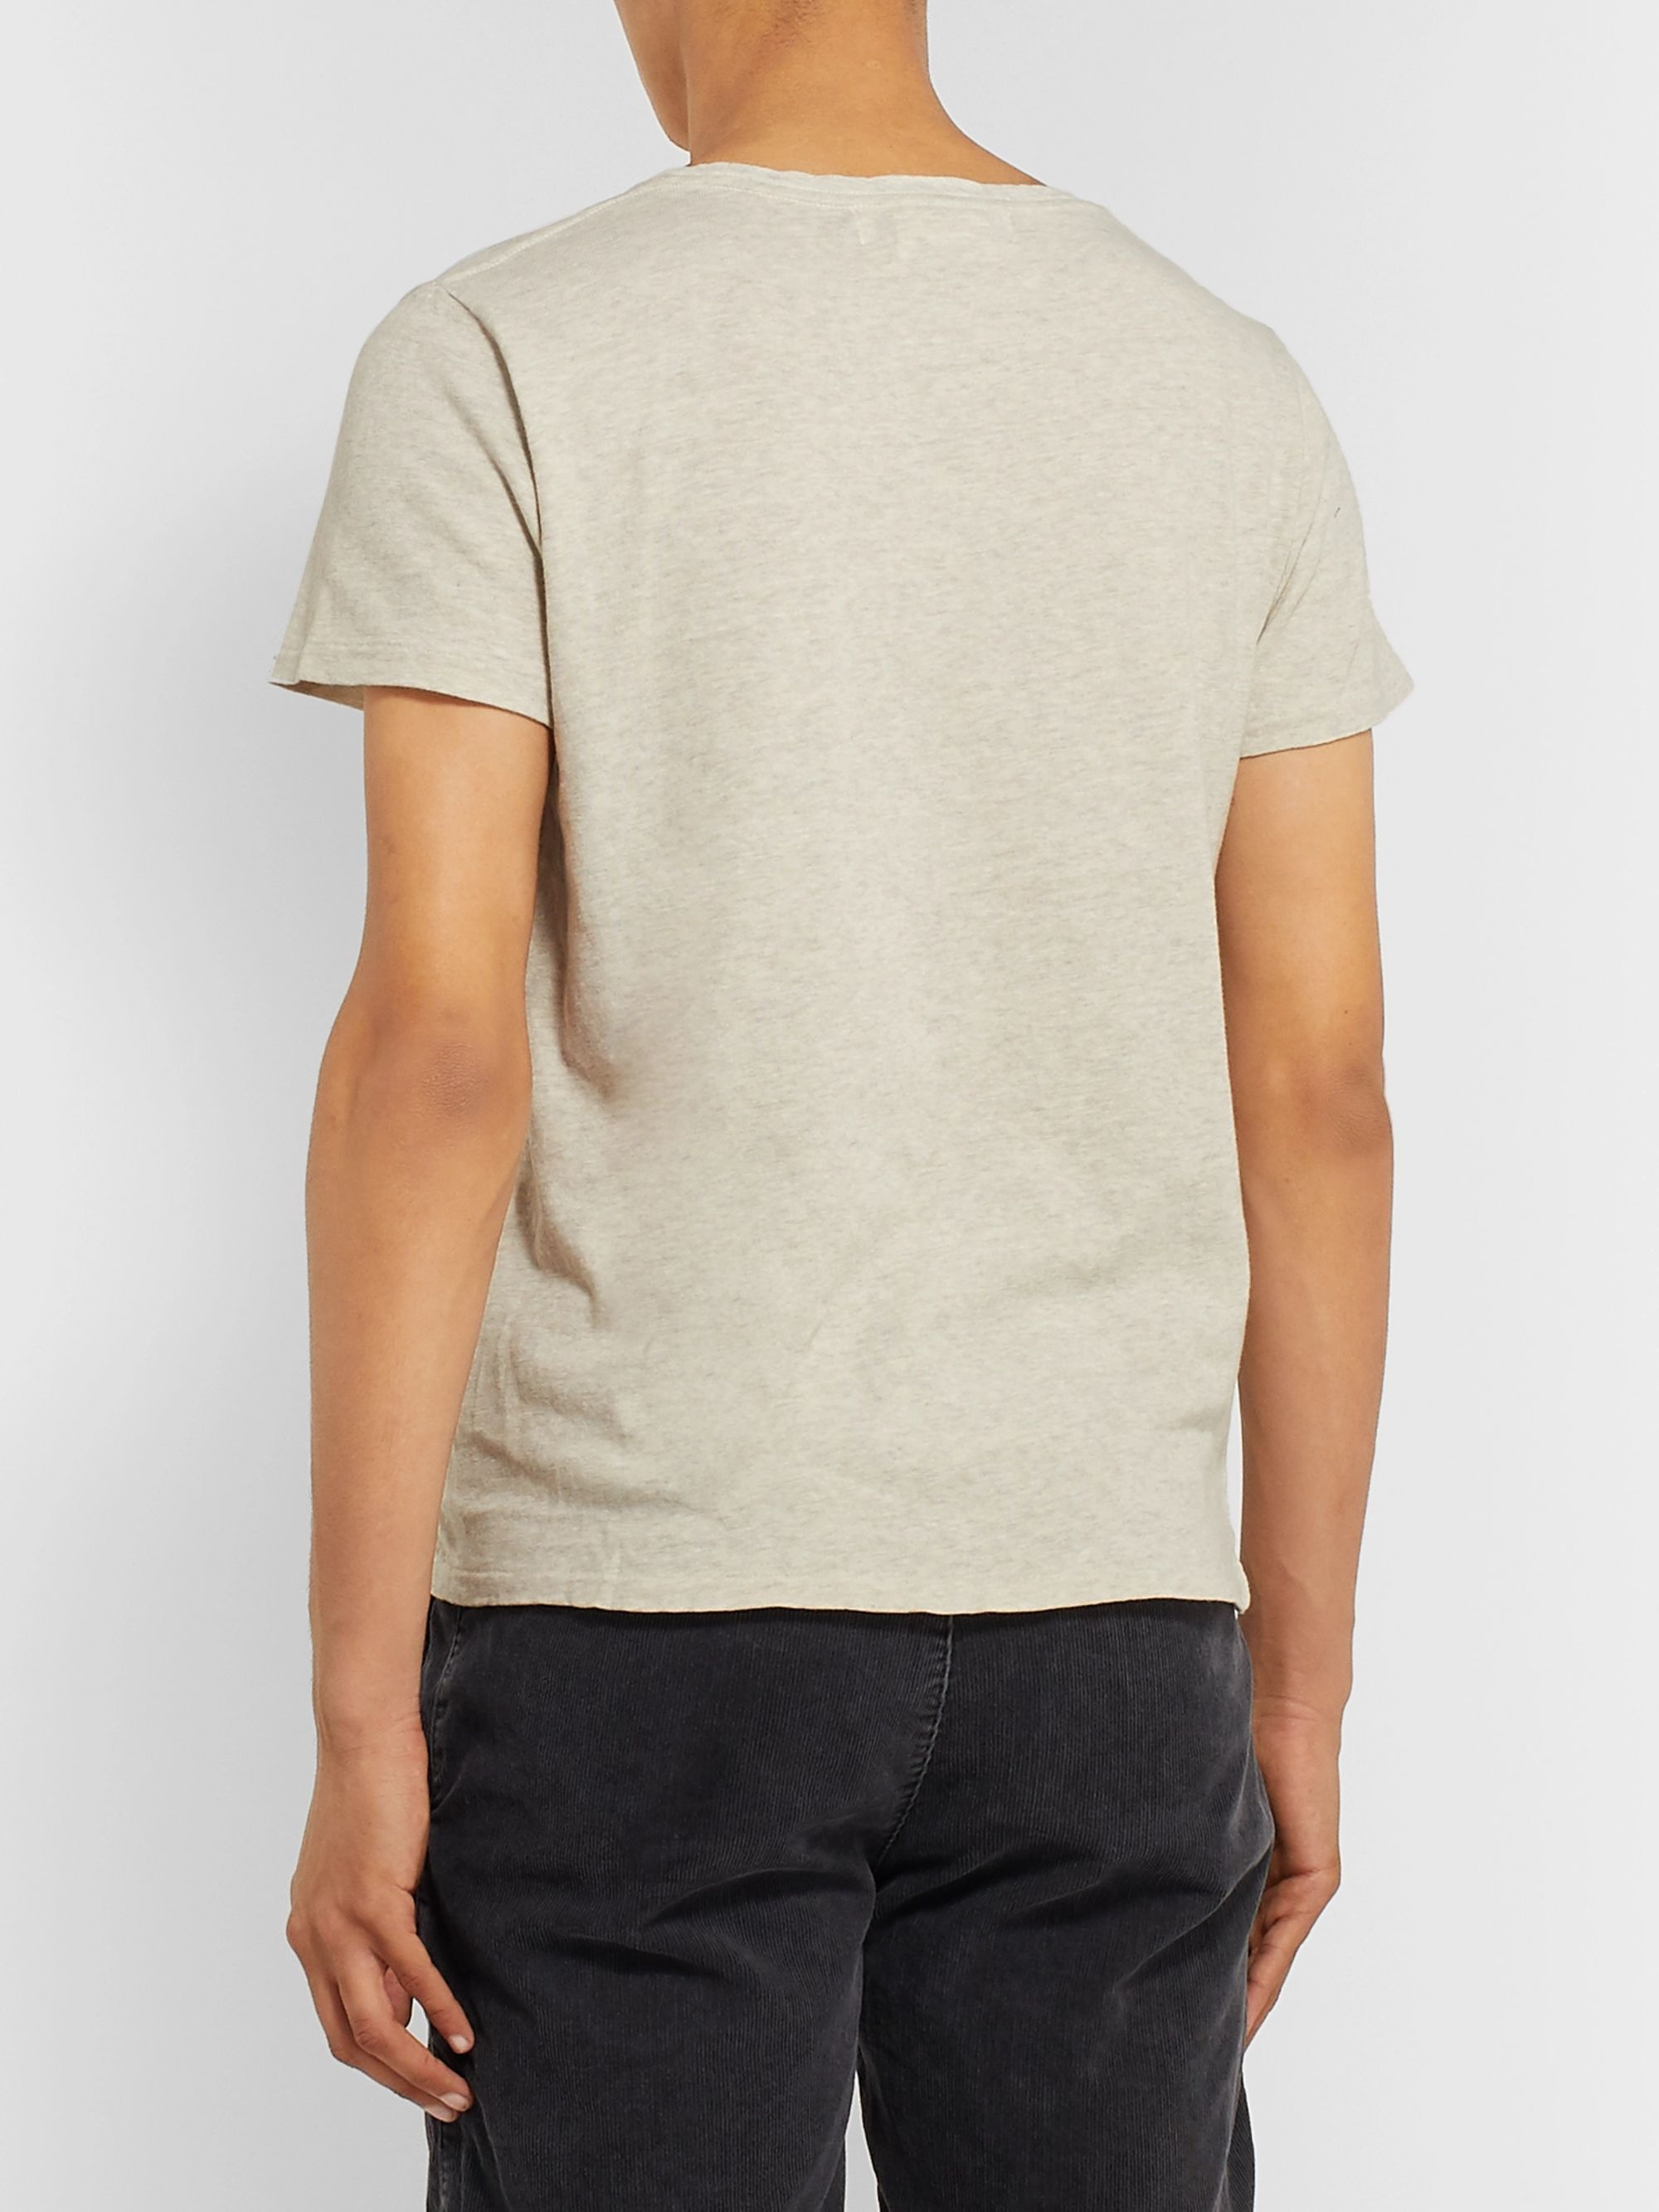 Remi Relief Printed Cotton T-Shirt